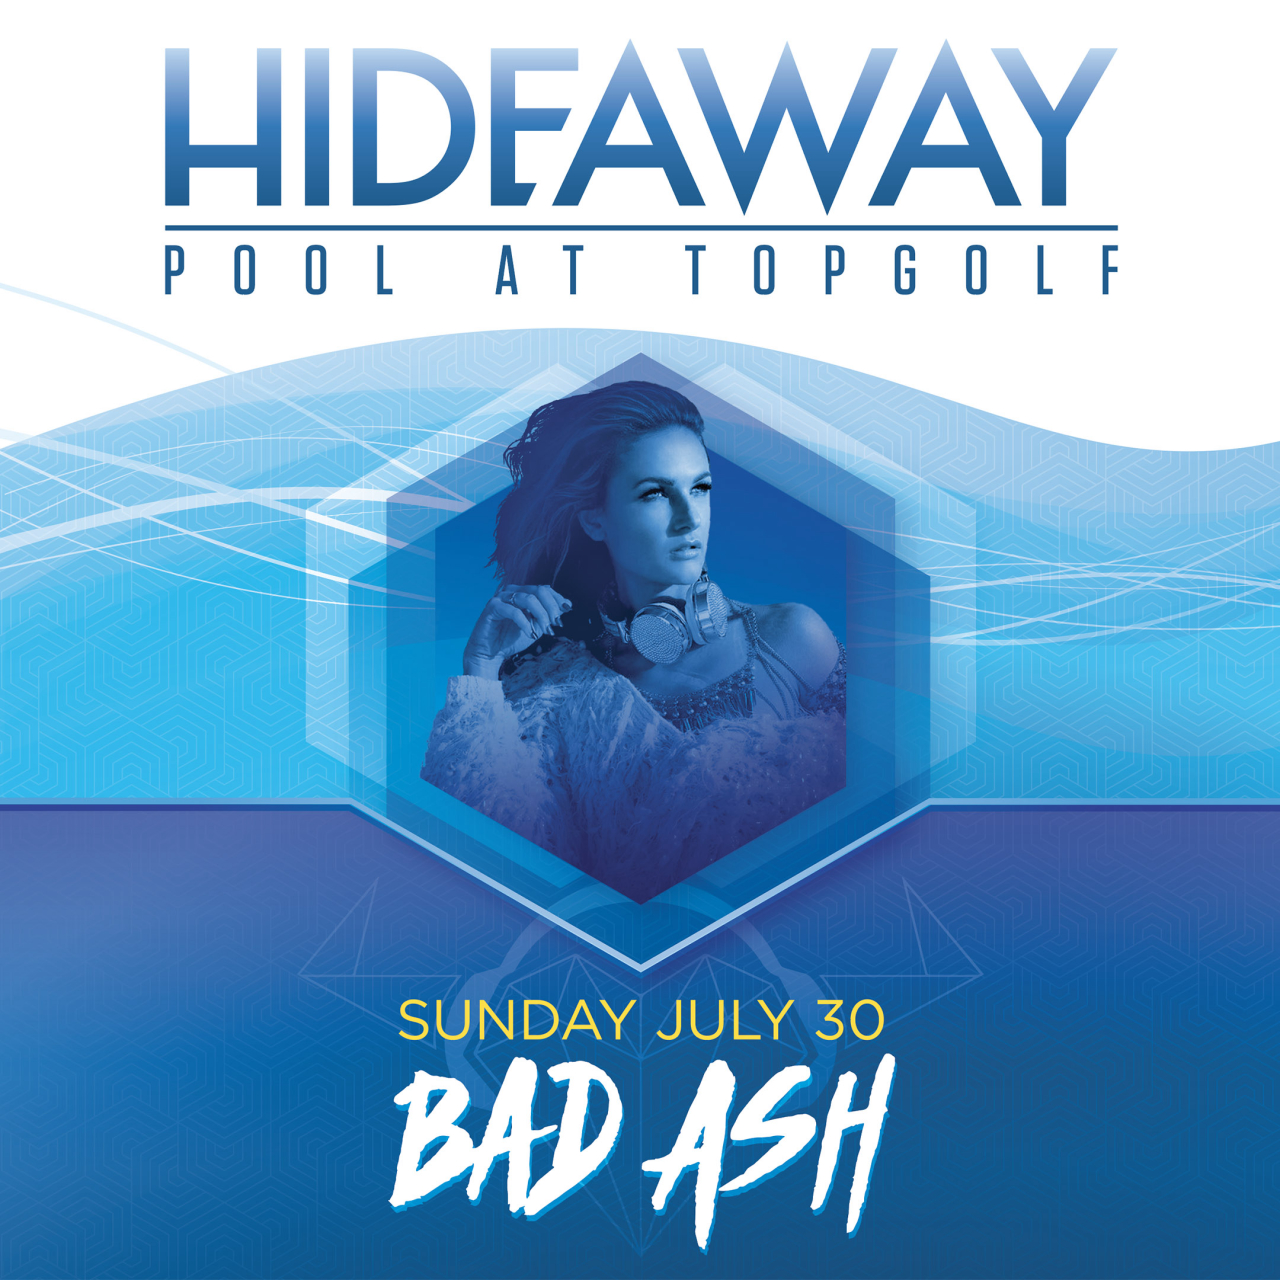 DJ Bad Ash topgolf las vegas pool